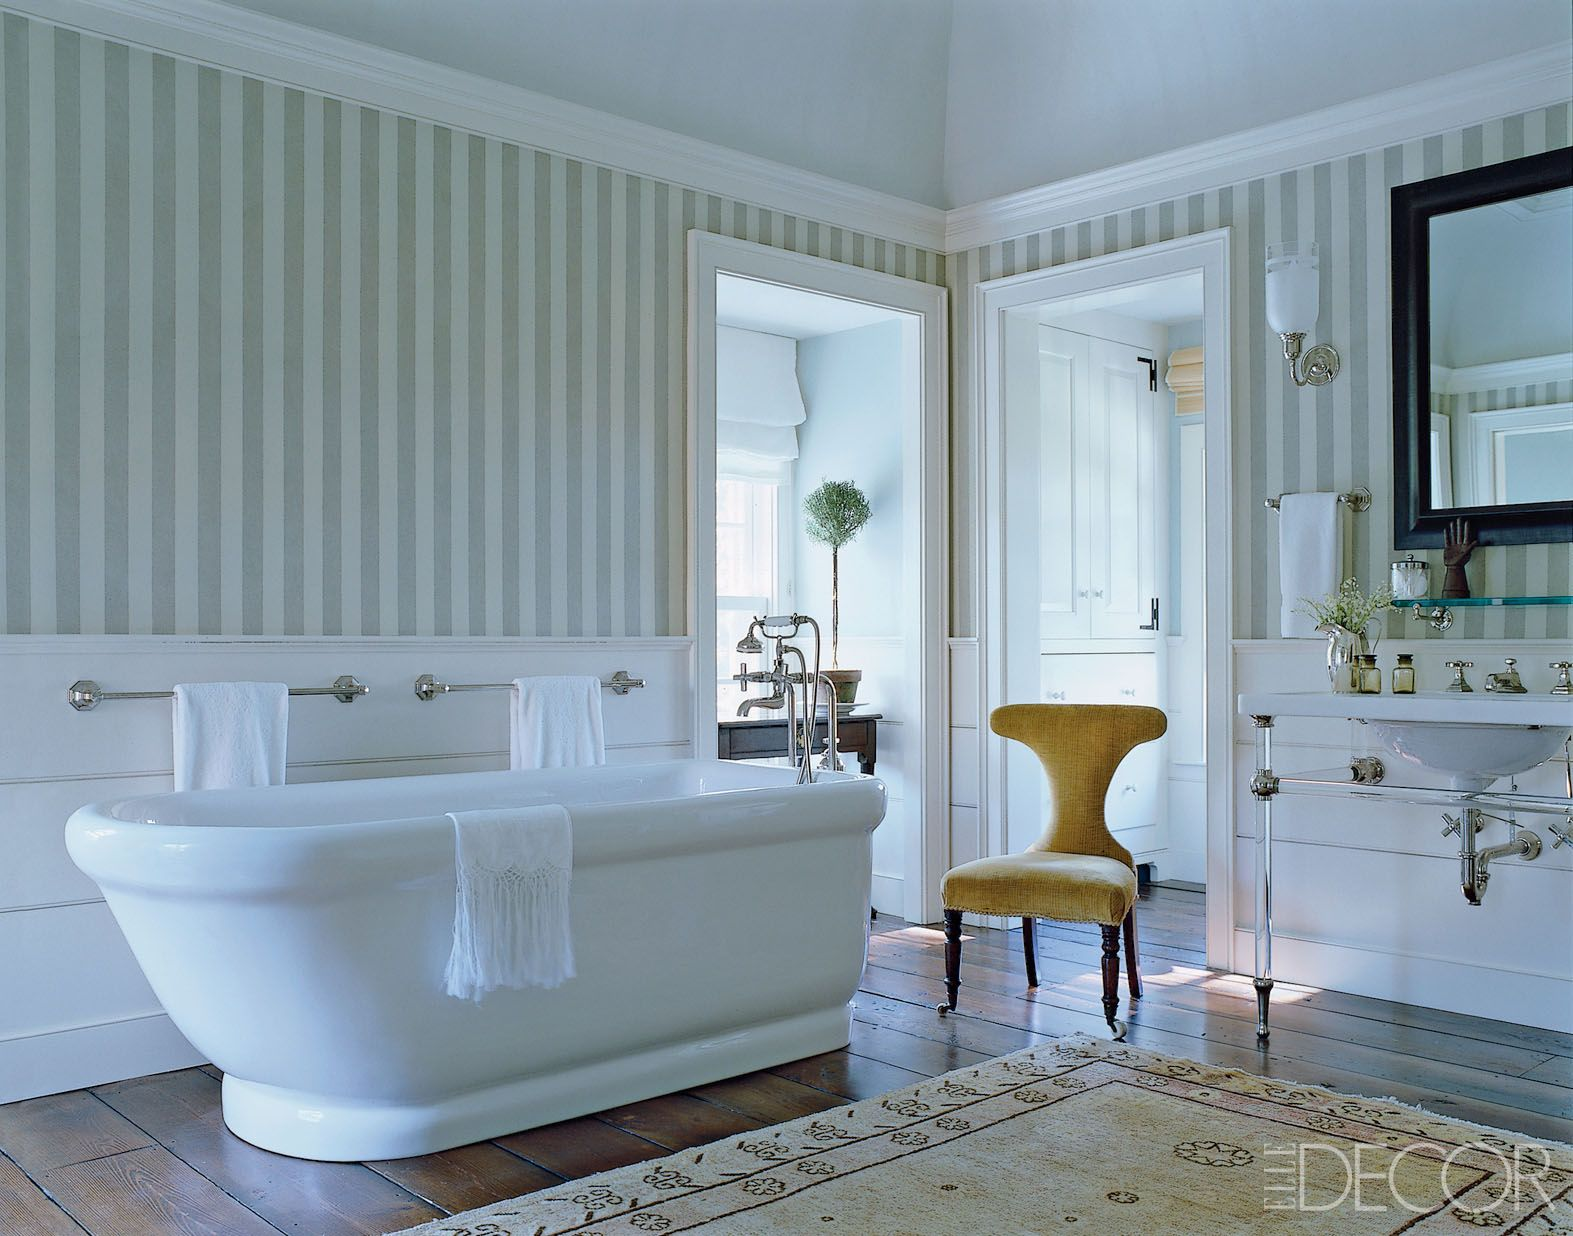 15 Bathroom Wallpaper Ideas   Wall Coverings for Bathrooms   Elle Decor The bathroom s sink and bath fittings and tub are by Michael S  Smith for  Kallista  the custom made washstand is by Urban Archaeology  the wallpaper  is by